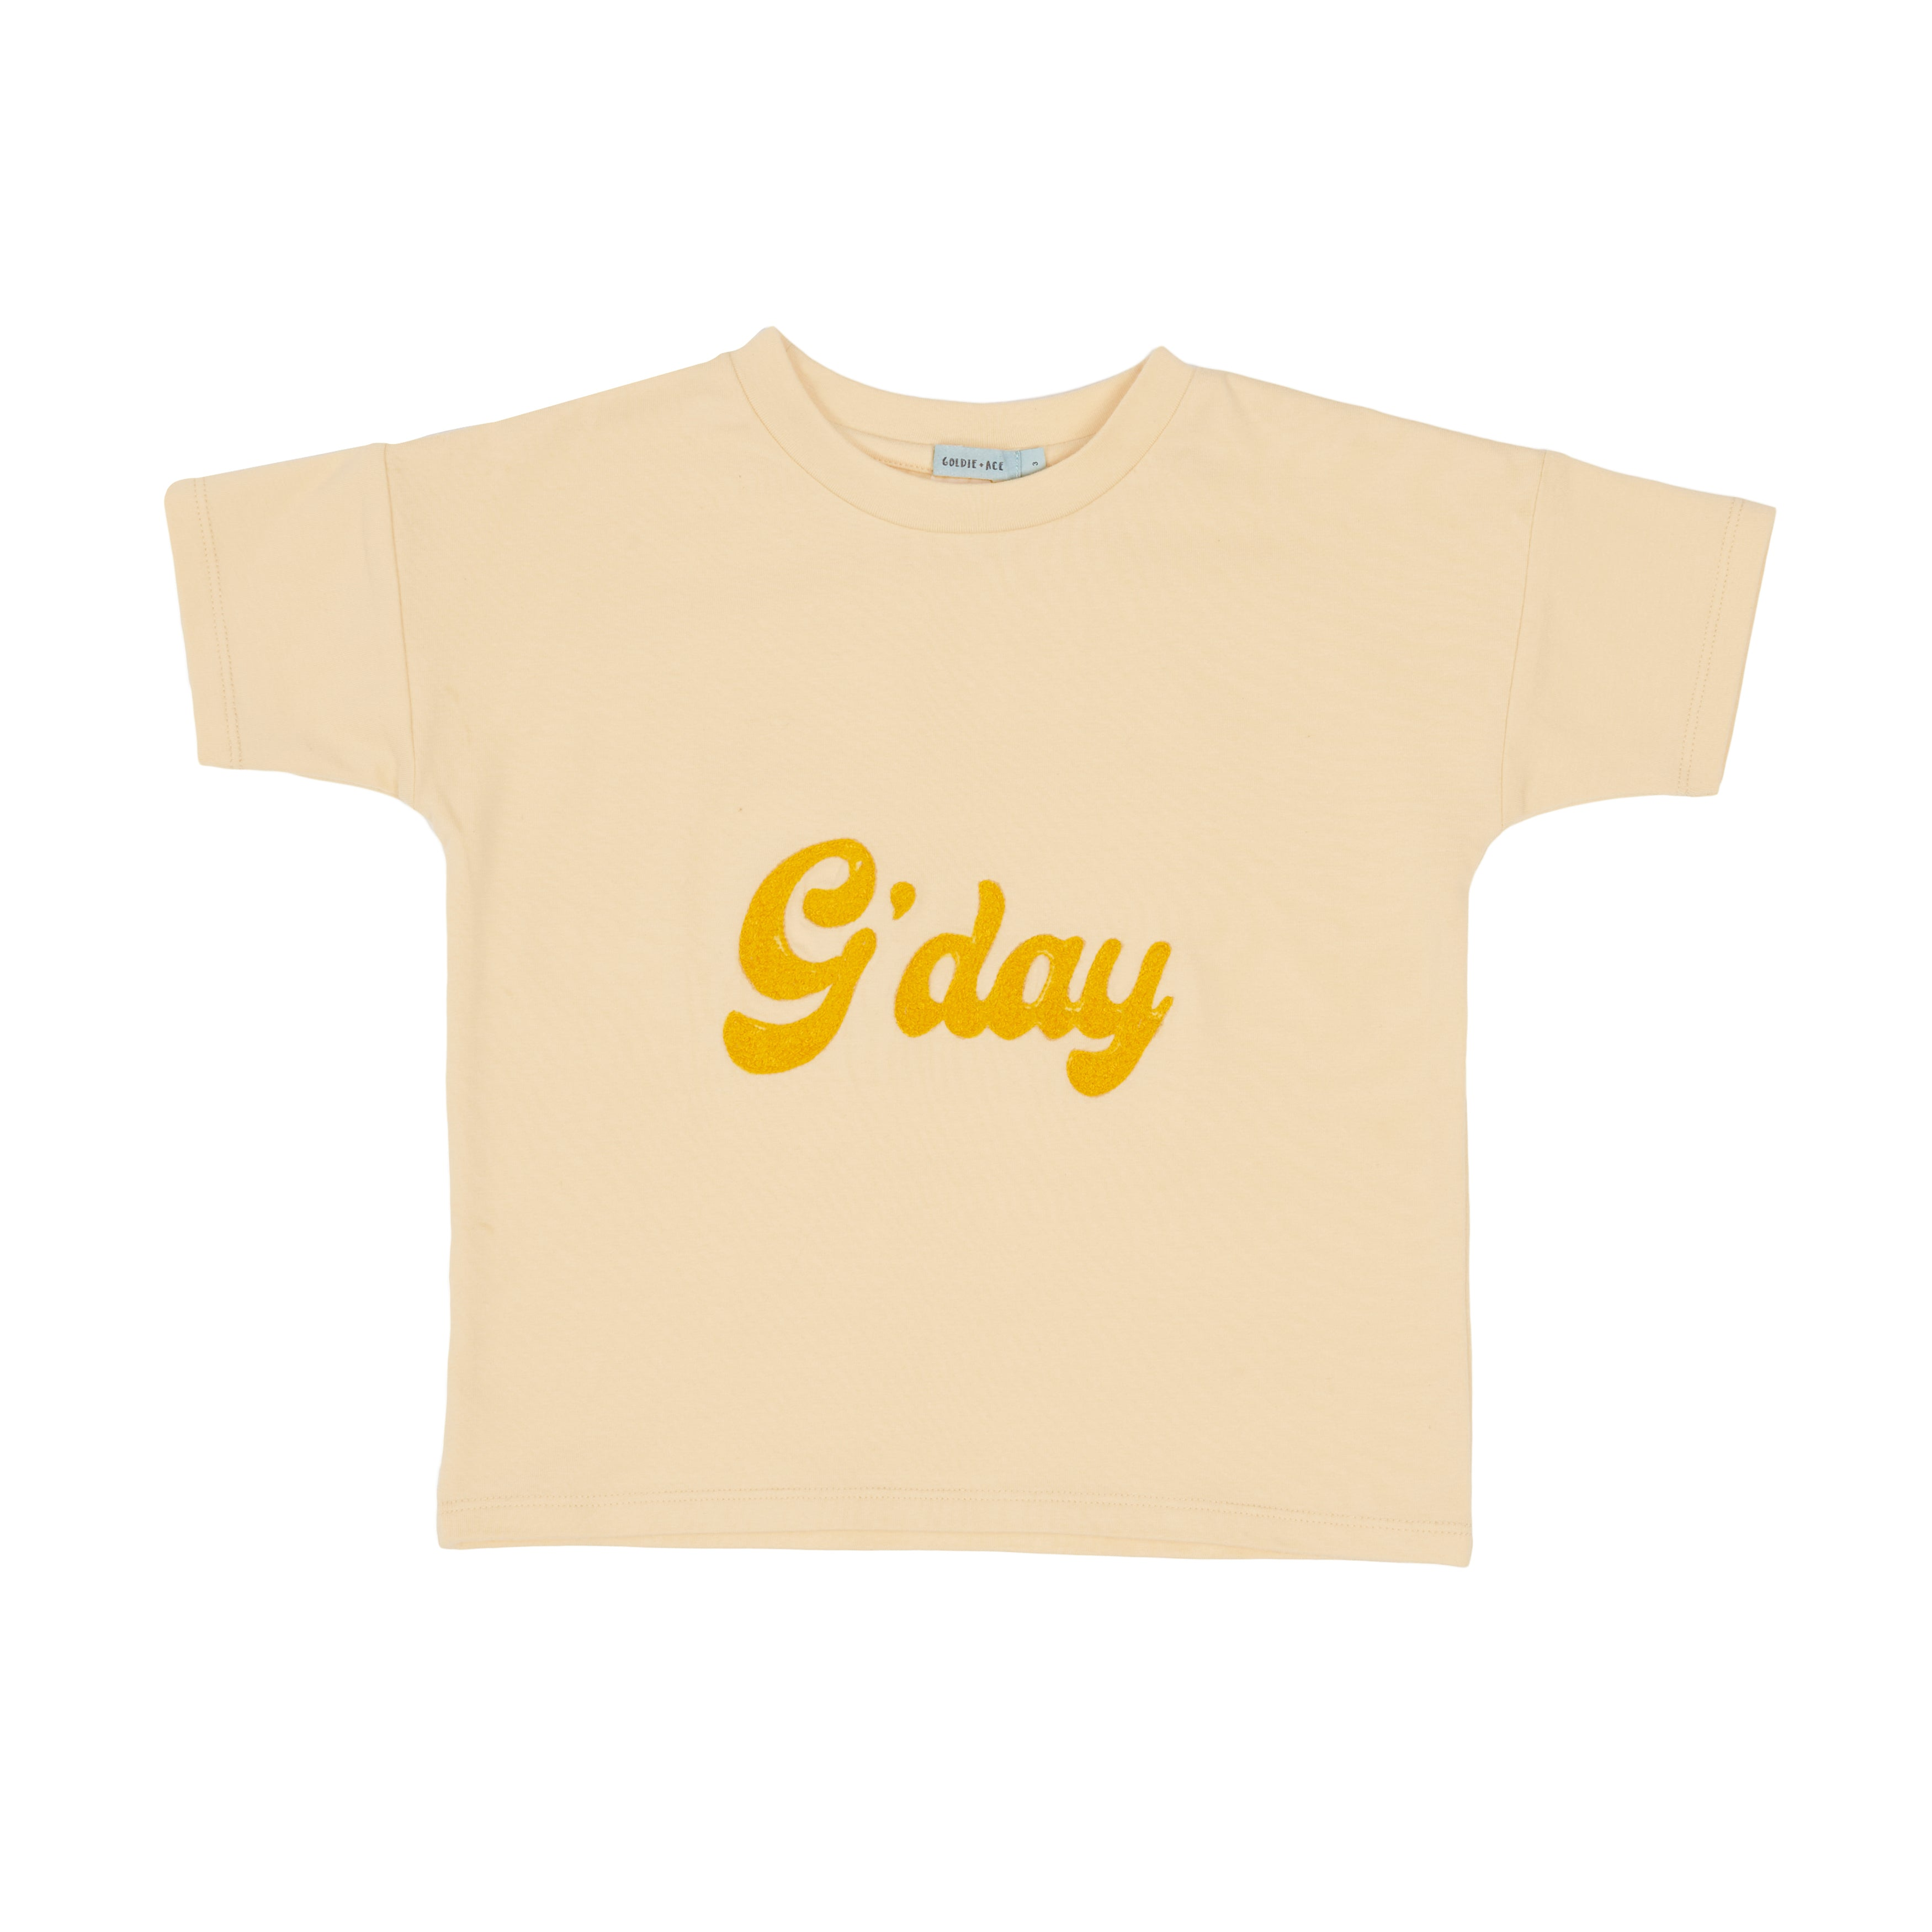 Goldie + Ace - G'Day Cotton T-Shirt (Blush)